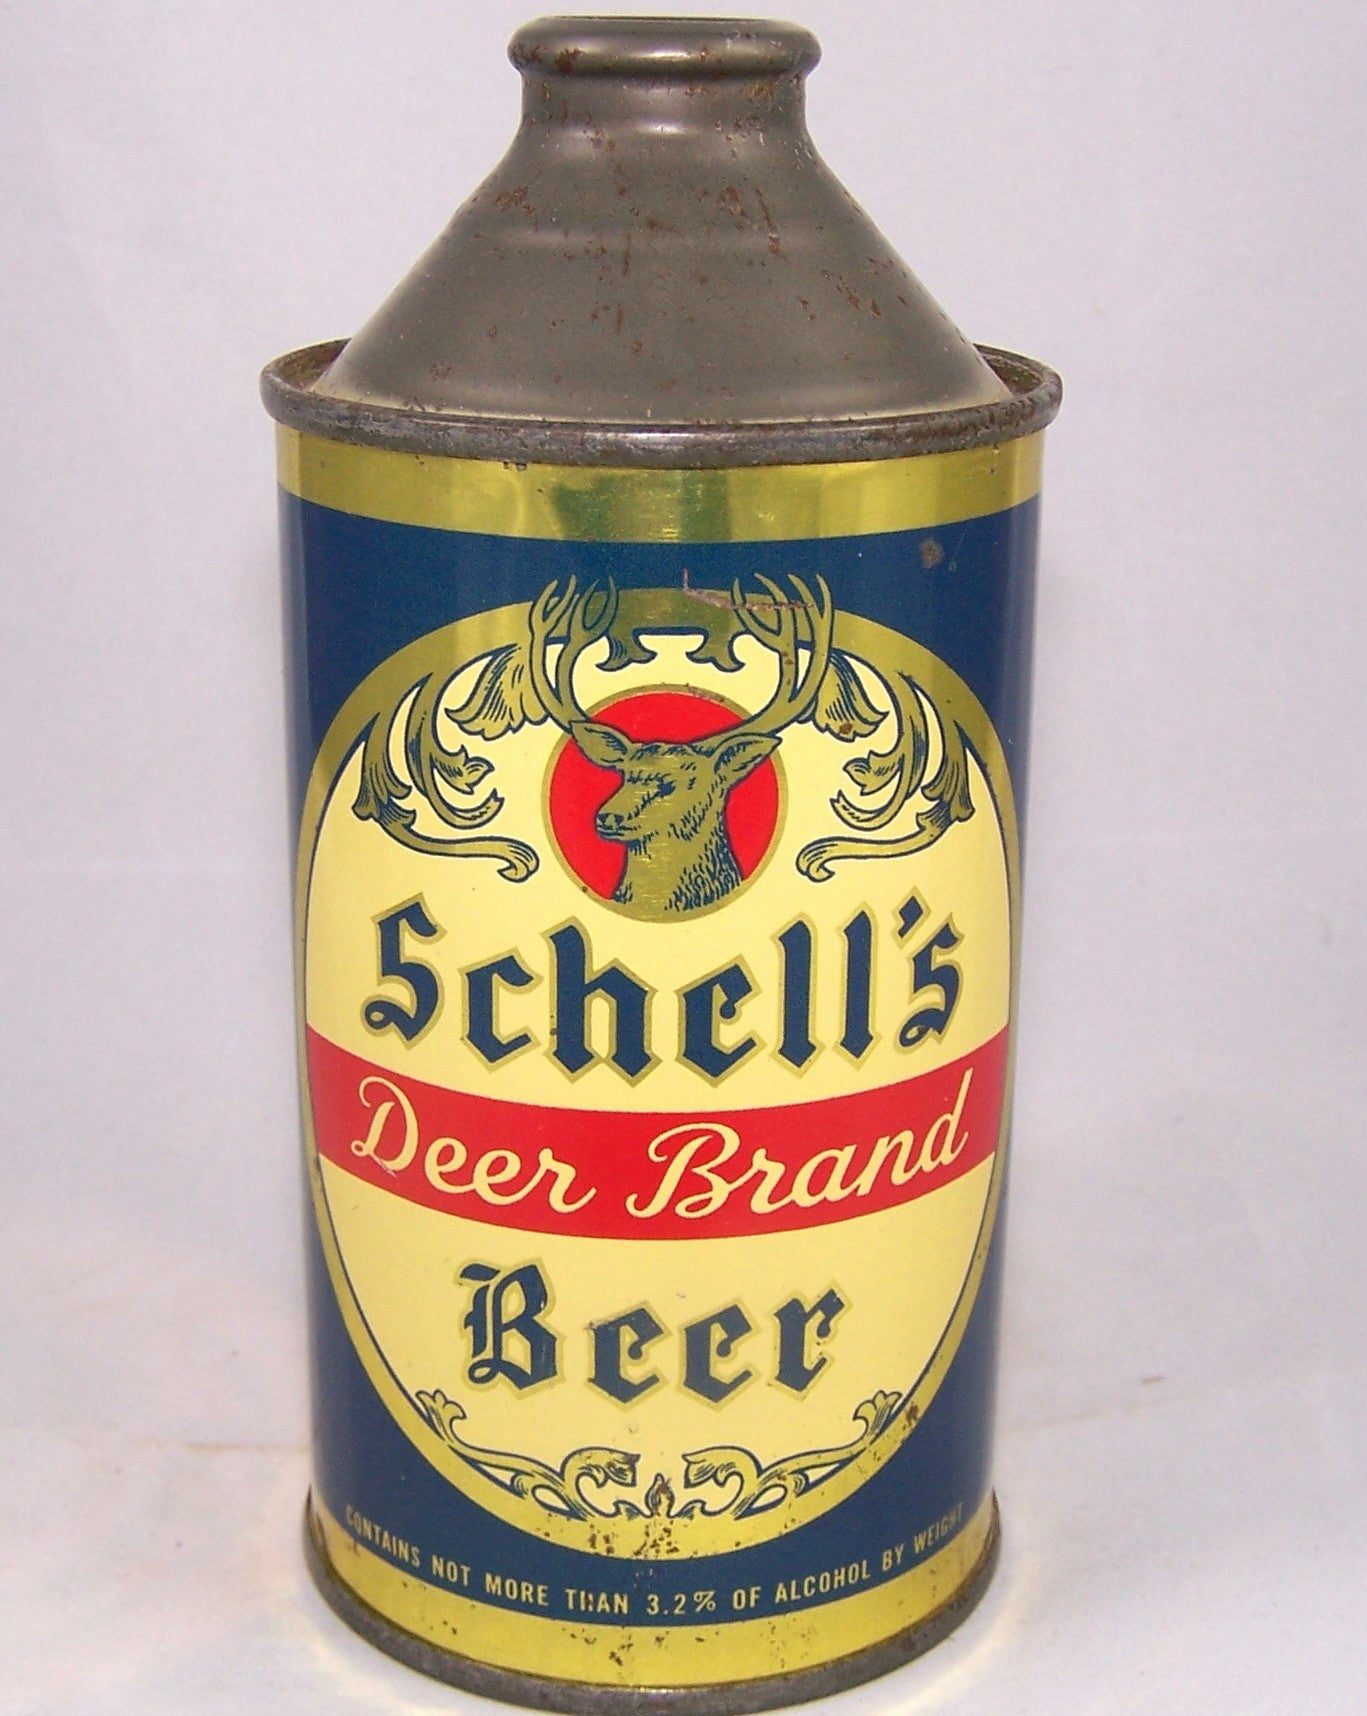 Schell's Deer Brand Beer, USBC 183-7, Grade 1 to 1/1+ Sold on 04/10/16